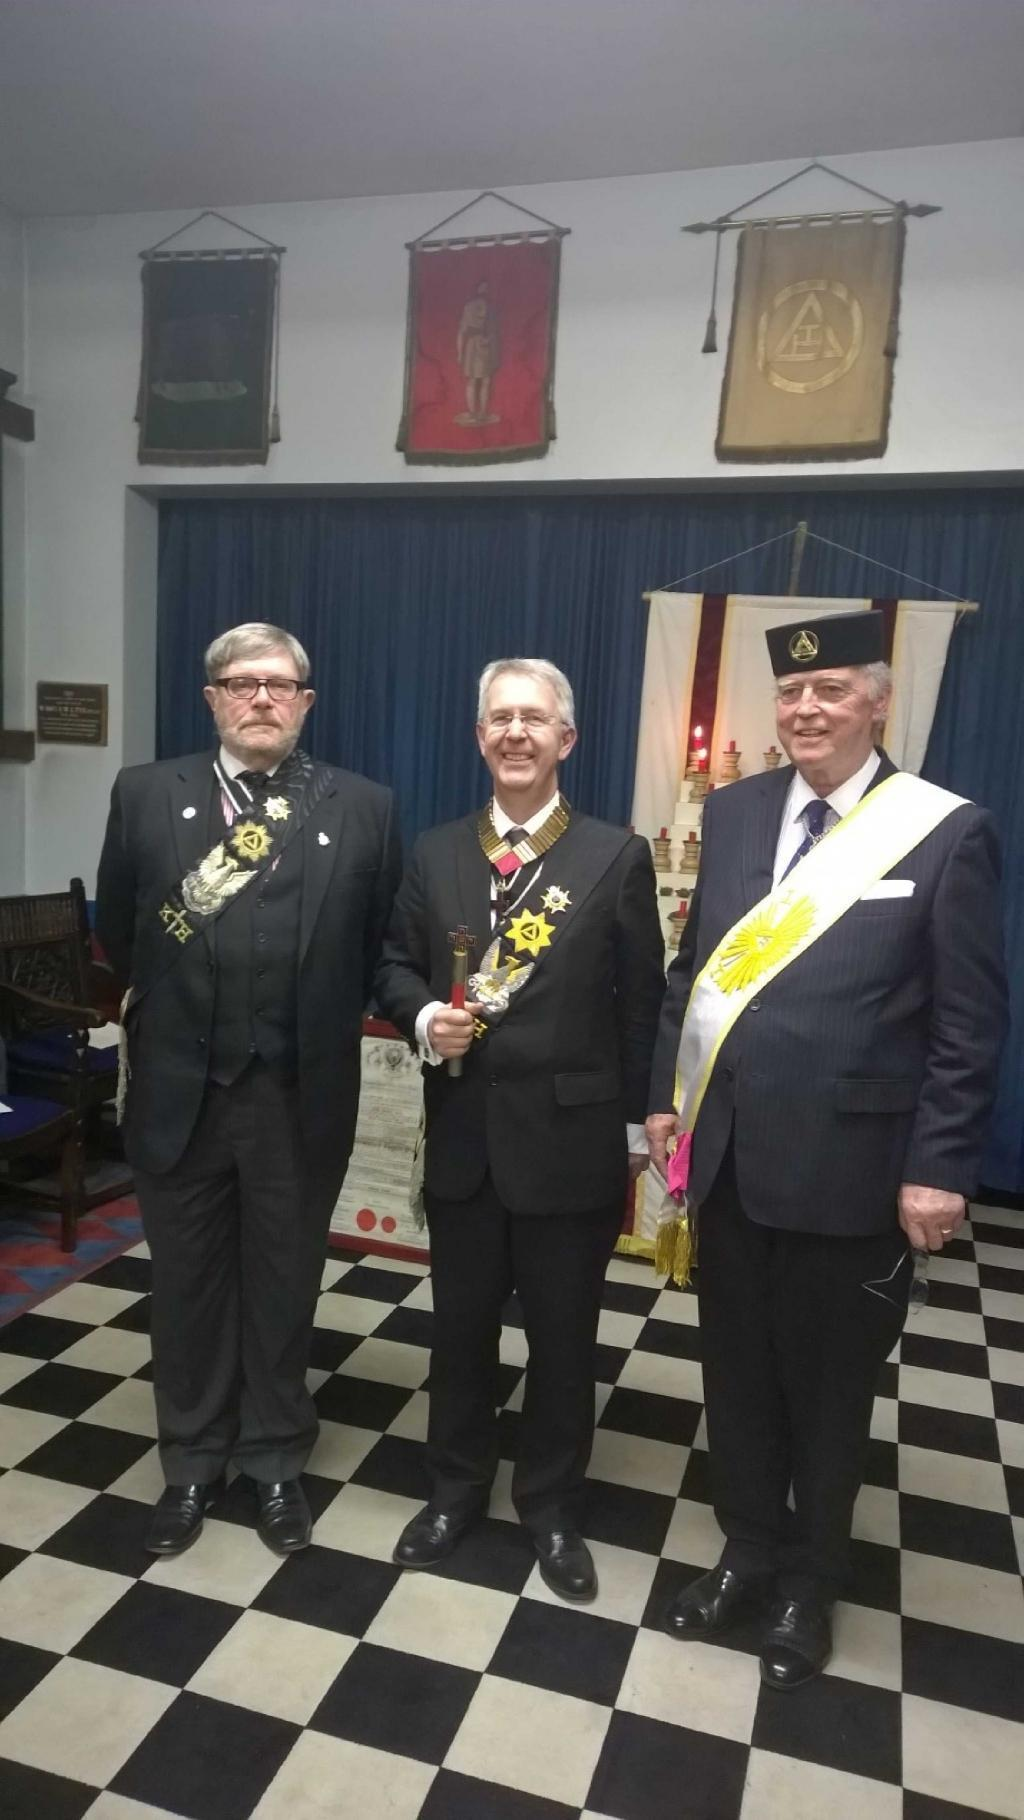 Oldswinford RC Chapter Apl 2017.jpg